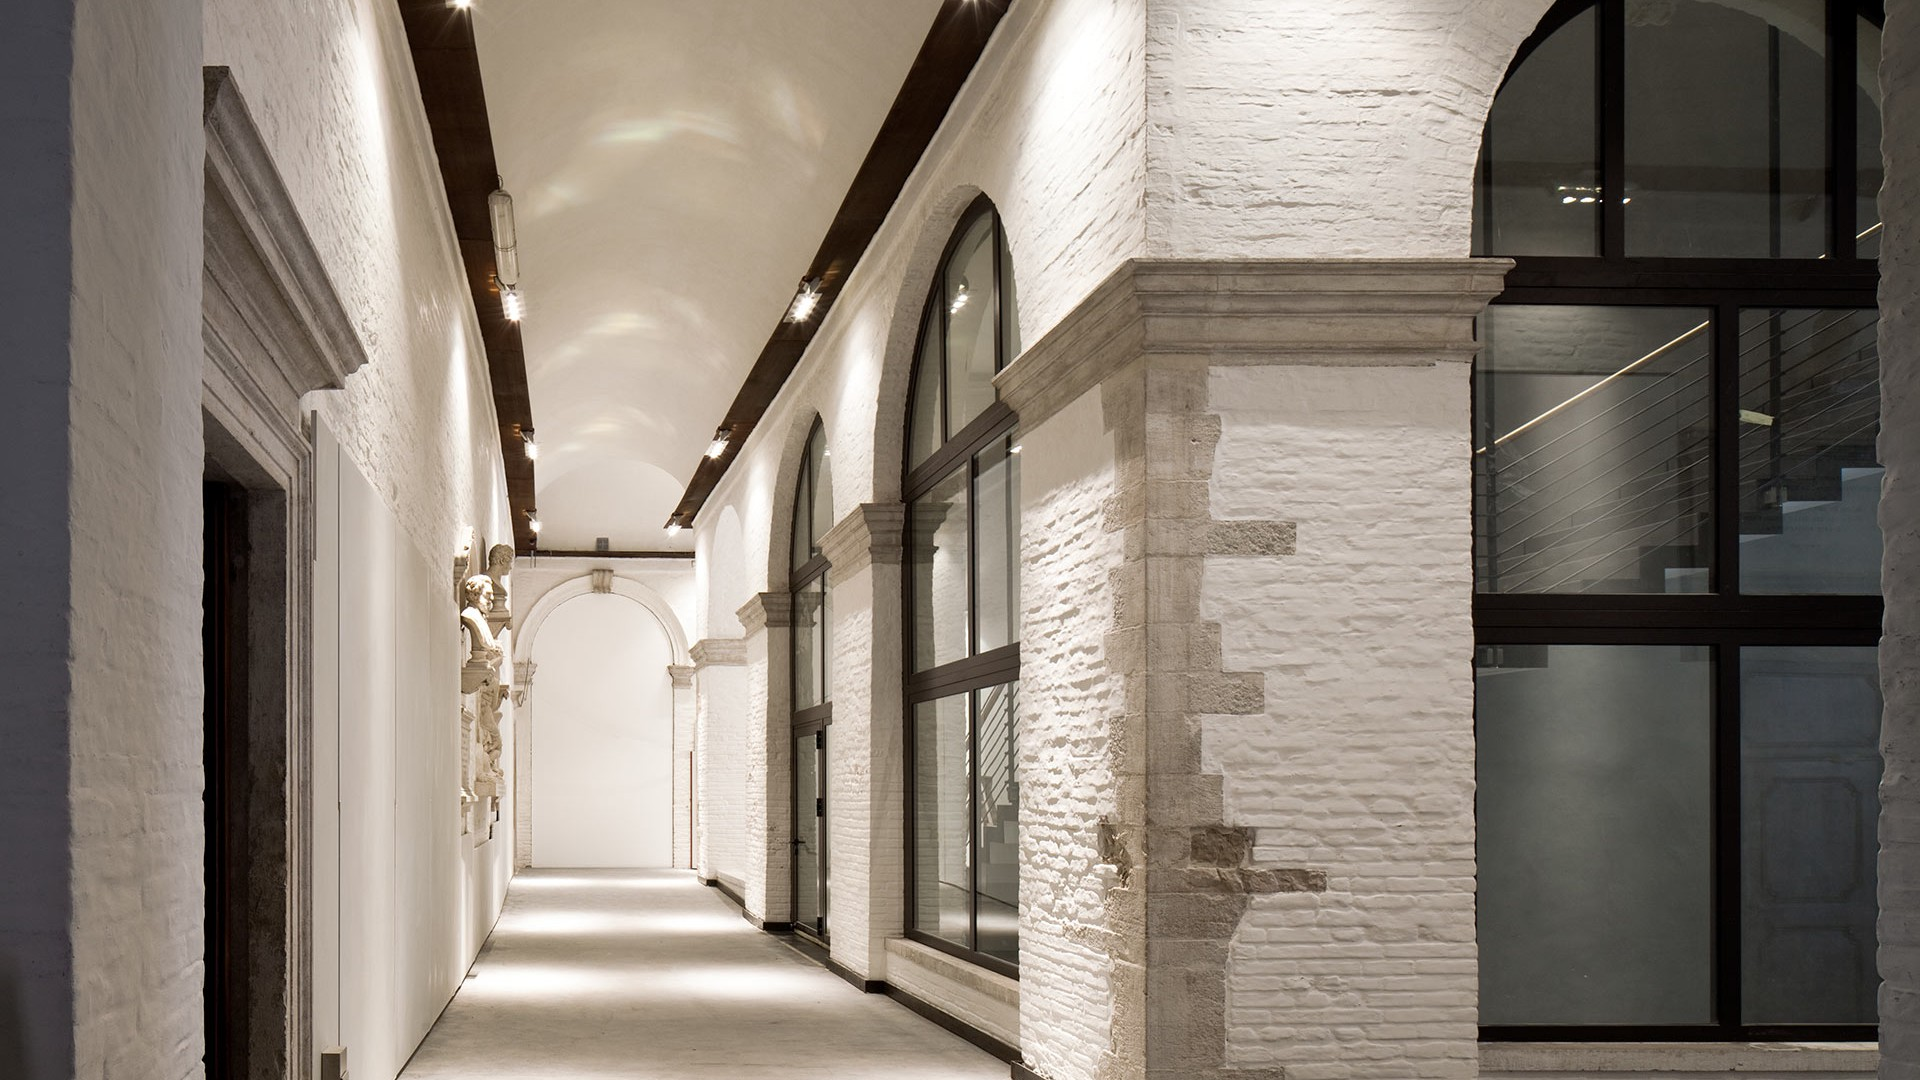 Bronze windows with minimal sightlines inside the Accademia museum in Venice